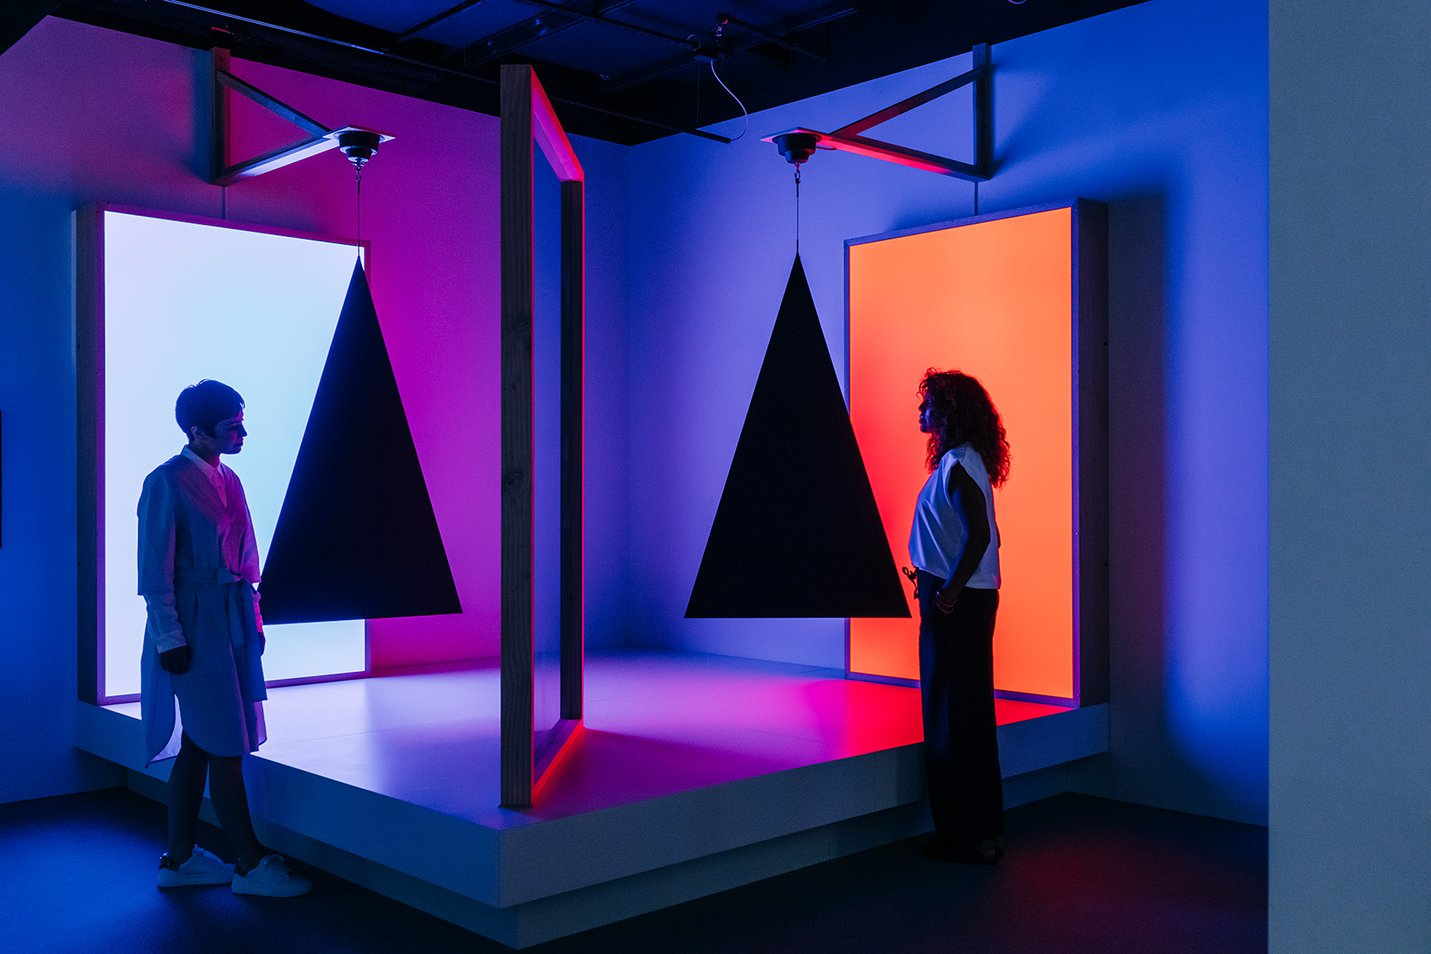 Visitors looking at Pepper's ghost effect, triangles, cyan and red, Taree Mackenzie, 2018 photograph by Gareth Sobey